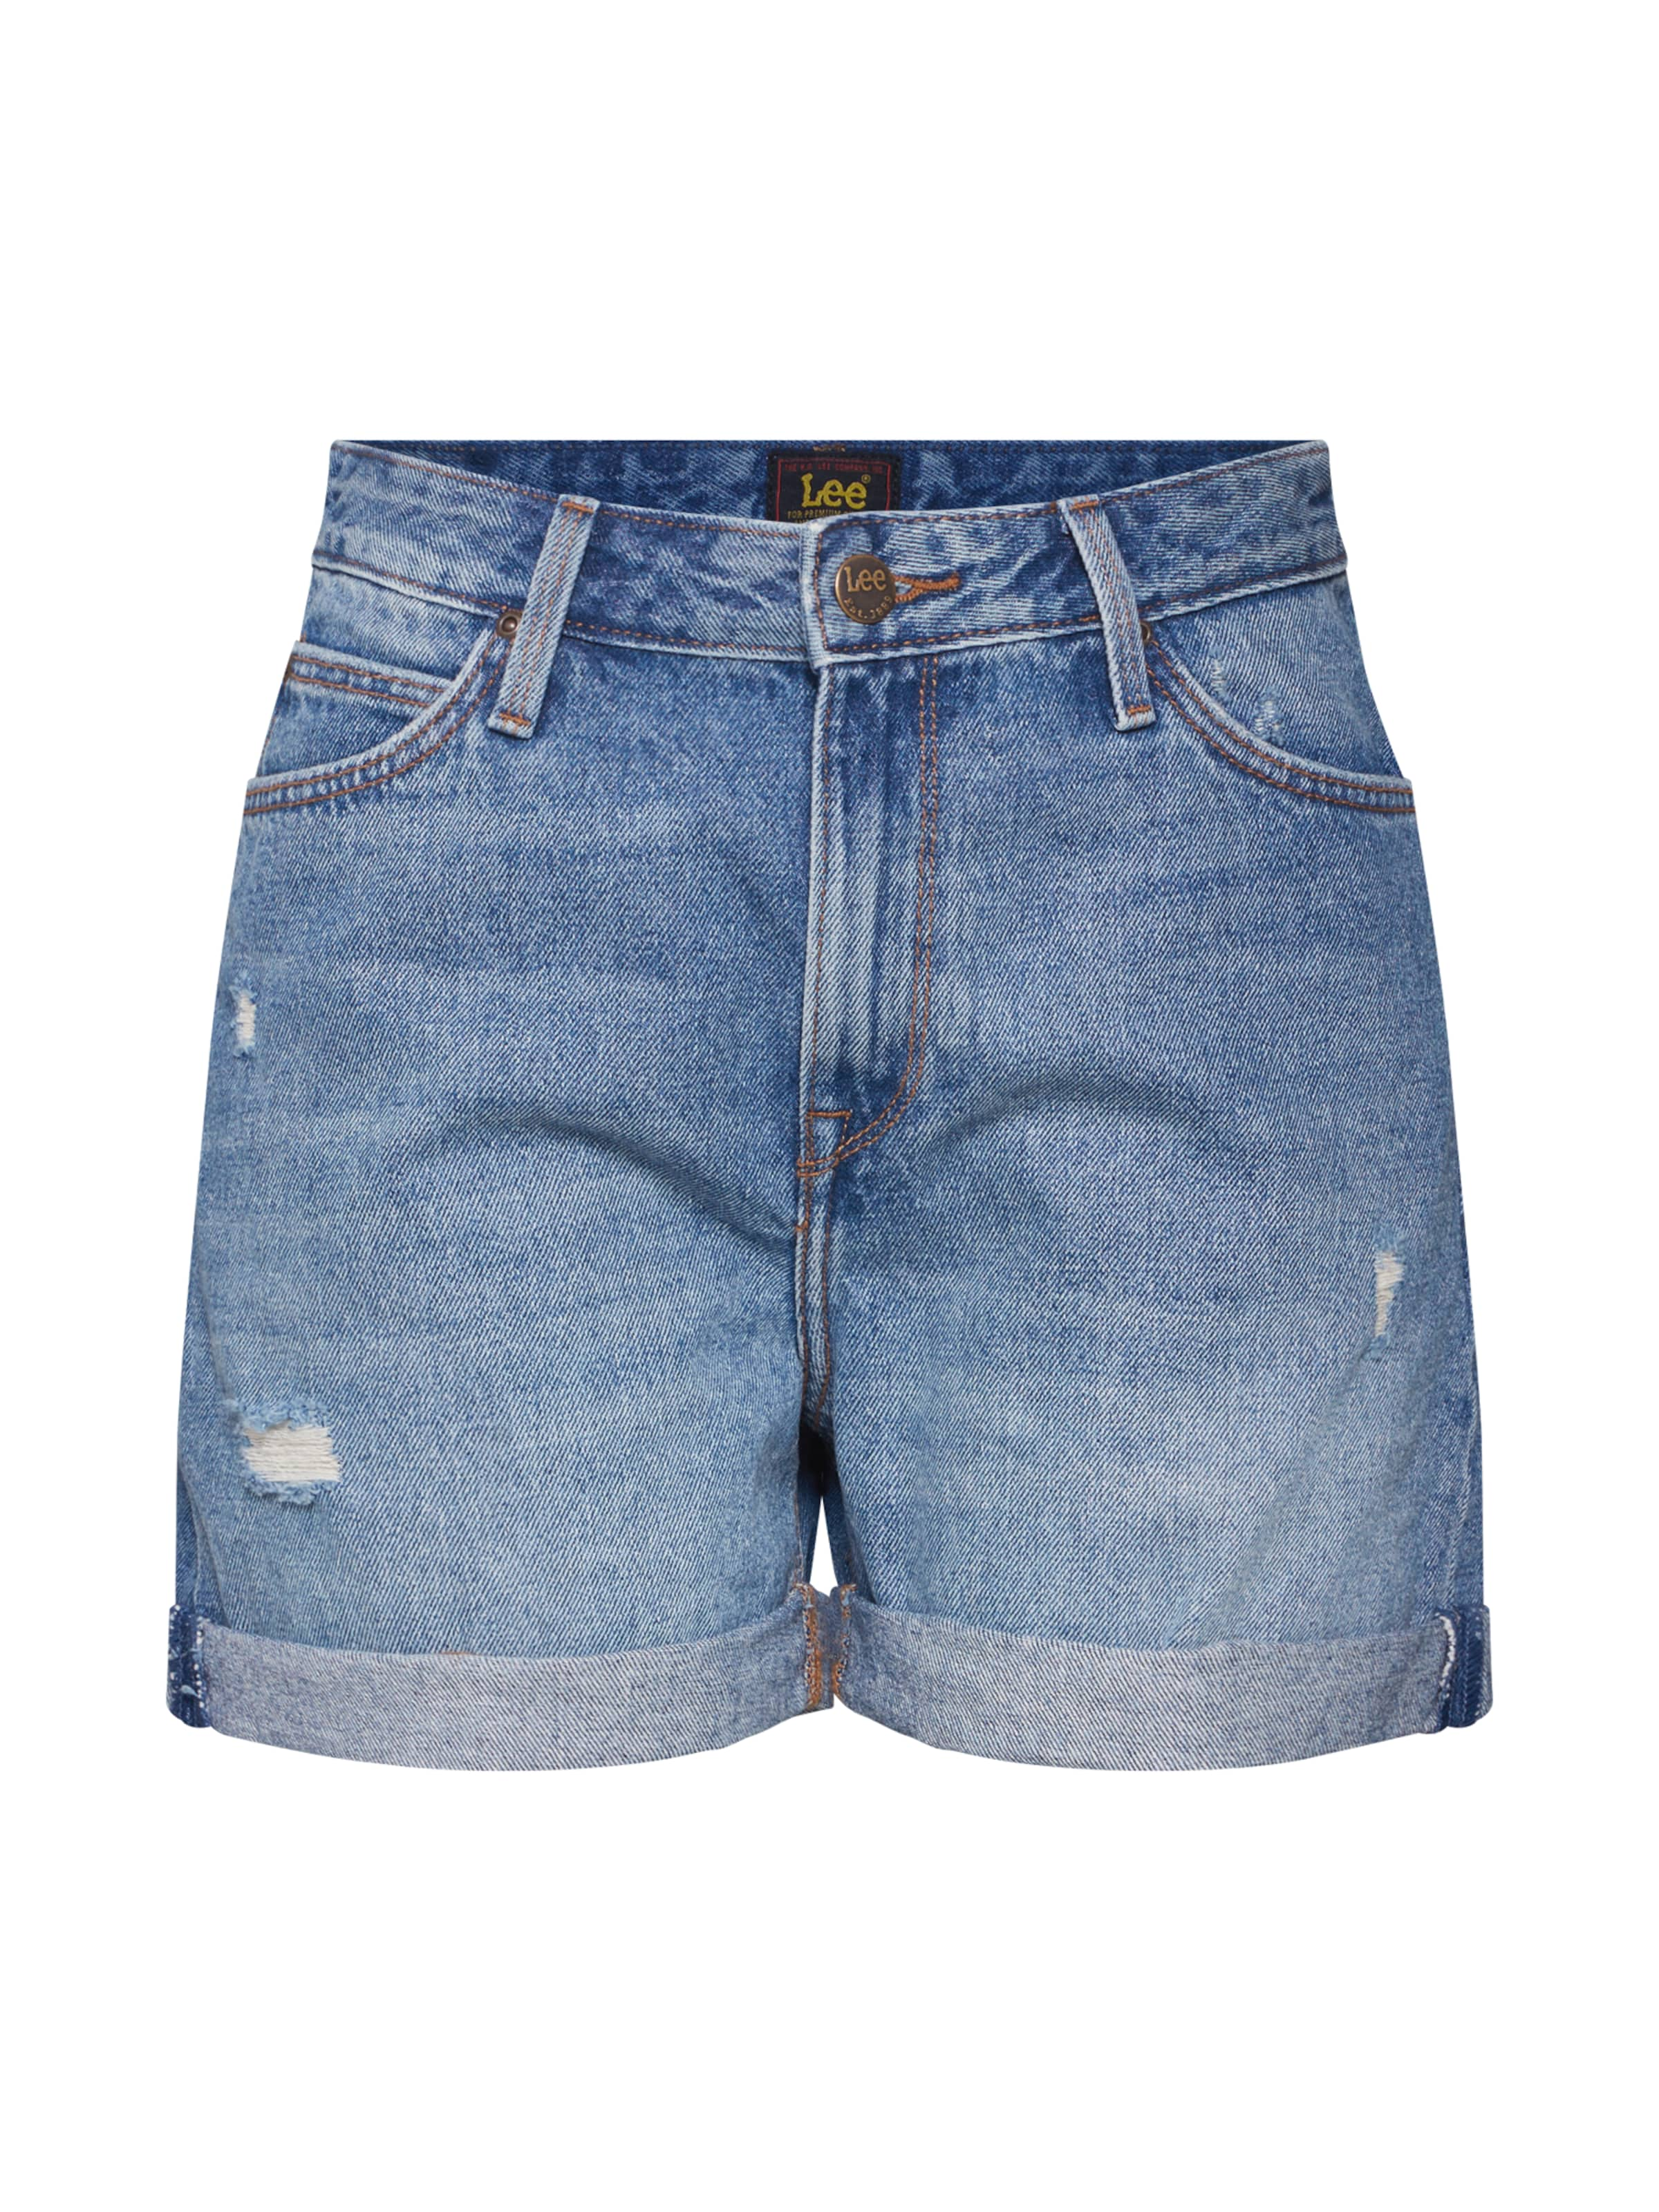 Lee Denim In Short Blue Jeans H9I2eWEbDY